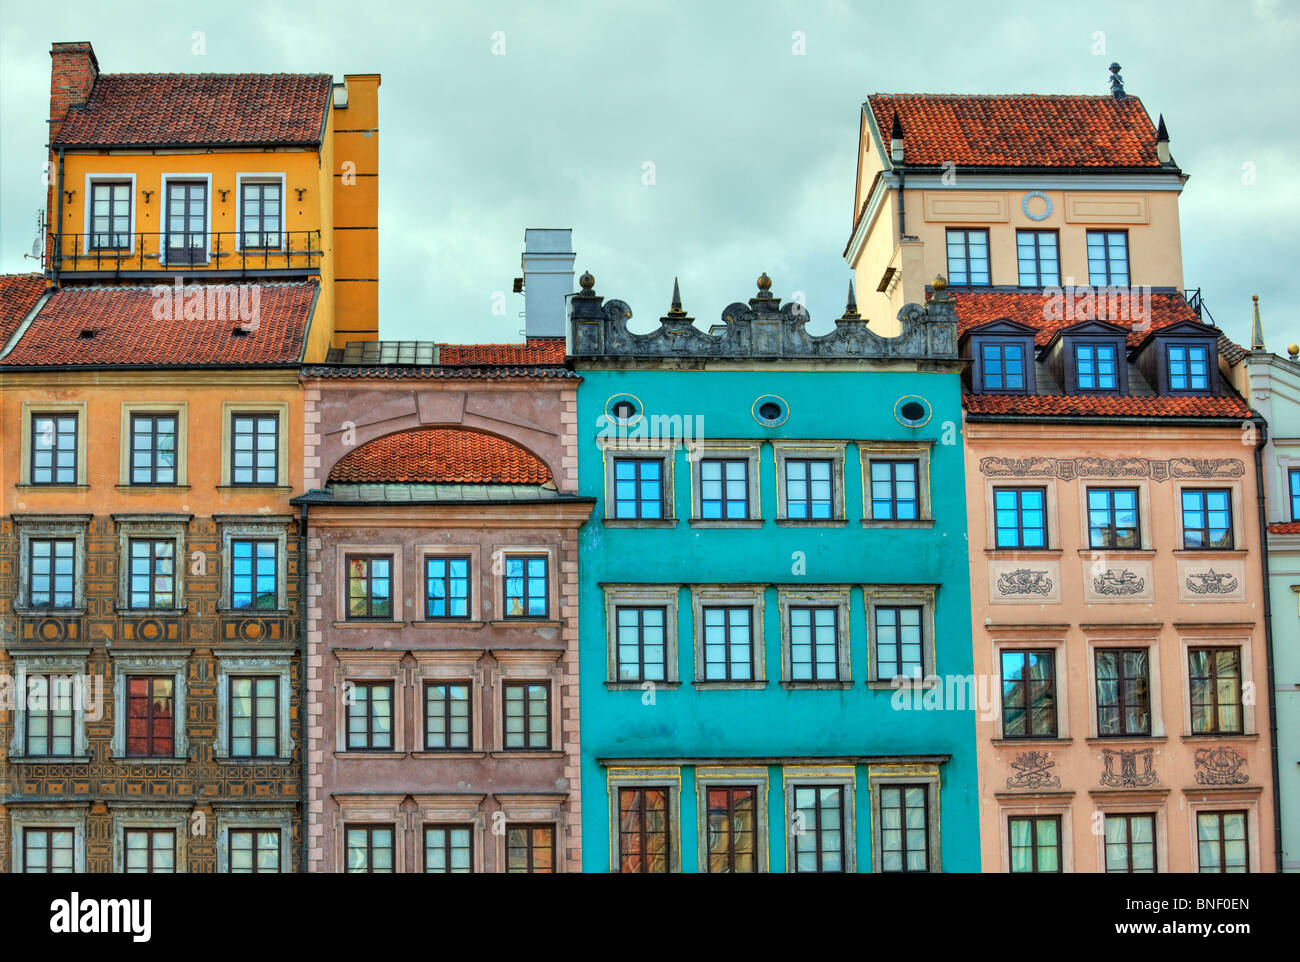 Colourful old houses / buildings in Warsaw, Poland - Stock Image